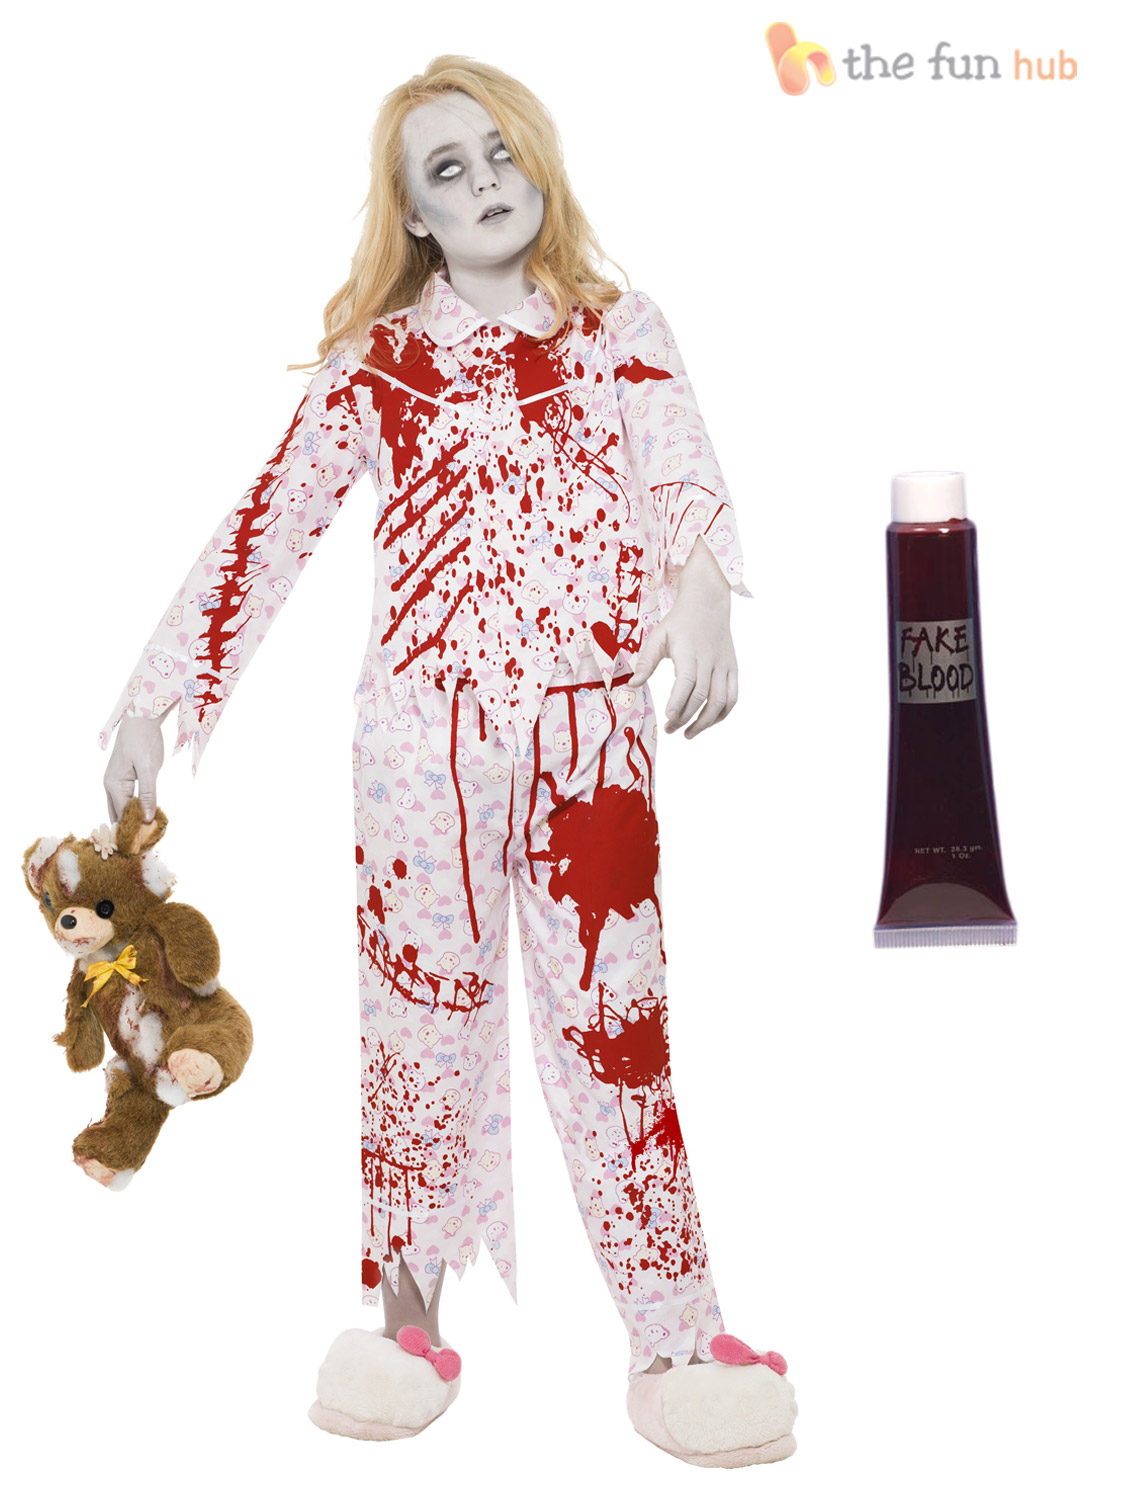 Details about Age 7,15 Girls Zombie Costumes + Blood Halloween Fancy Dress  Party Horror Kids